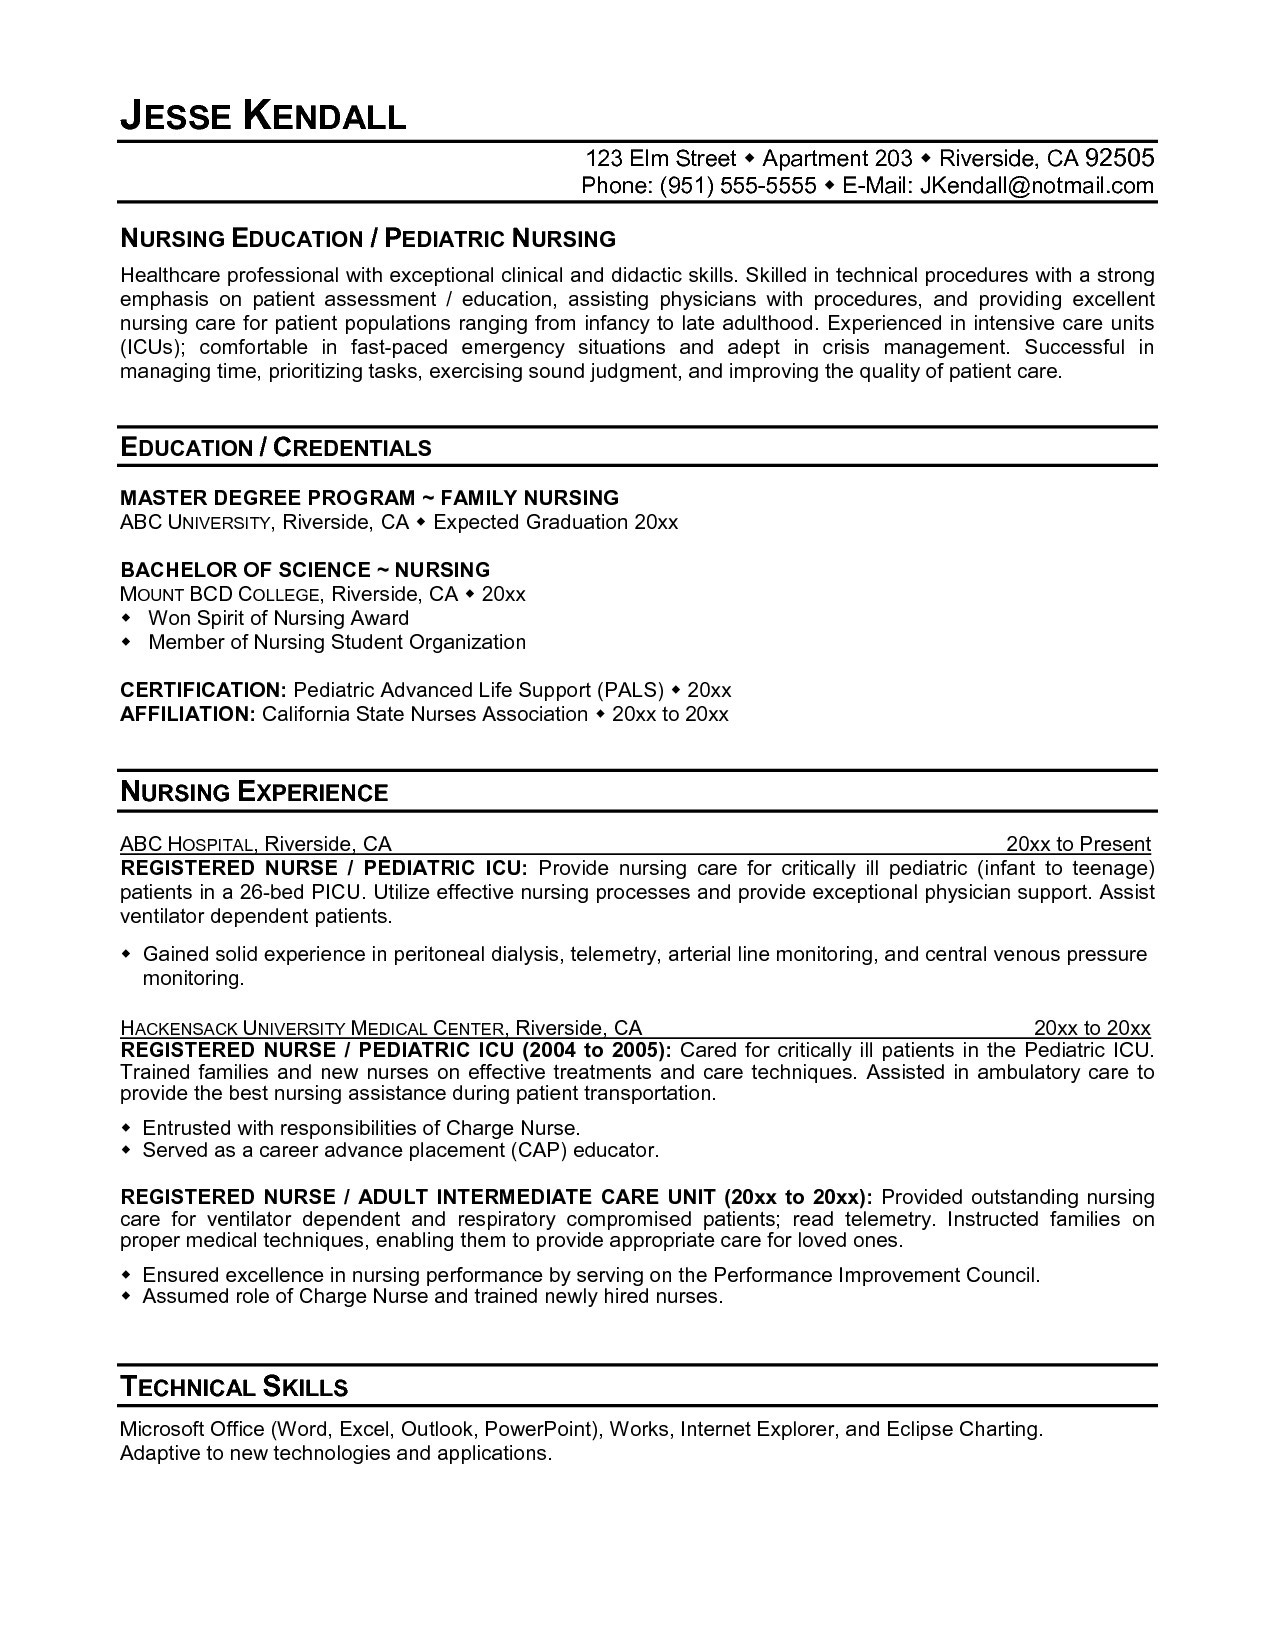 Sample Nursing Student Resume Clinical Experience - Nursing Student Resume Clinical Experience Popular Registered Nurse